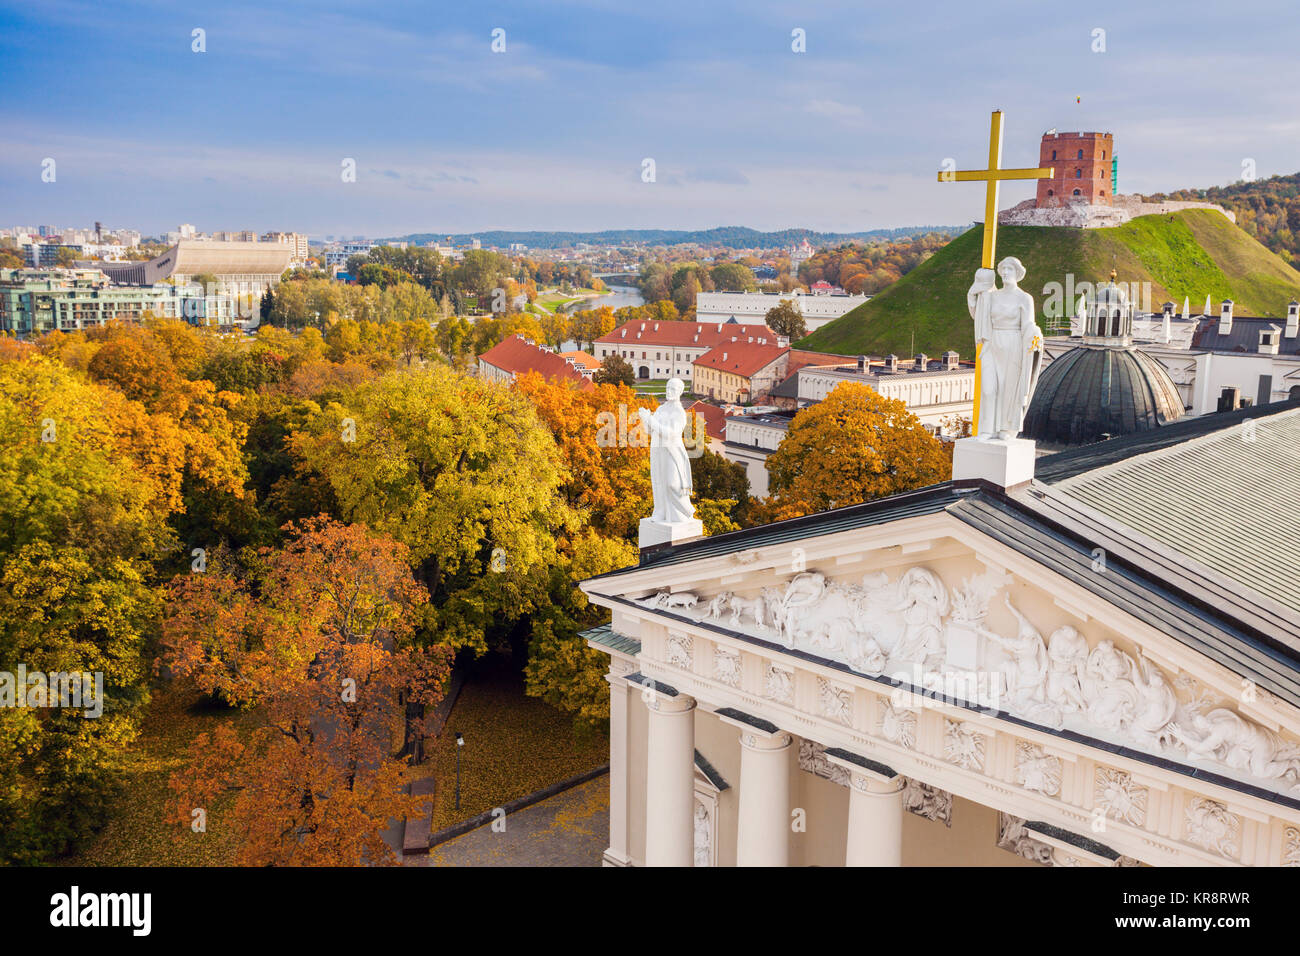 Lithuania, Vilnius, Vilnius cathedral roof with cityscape in background - Stock Image